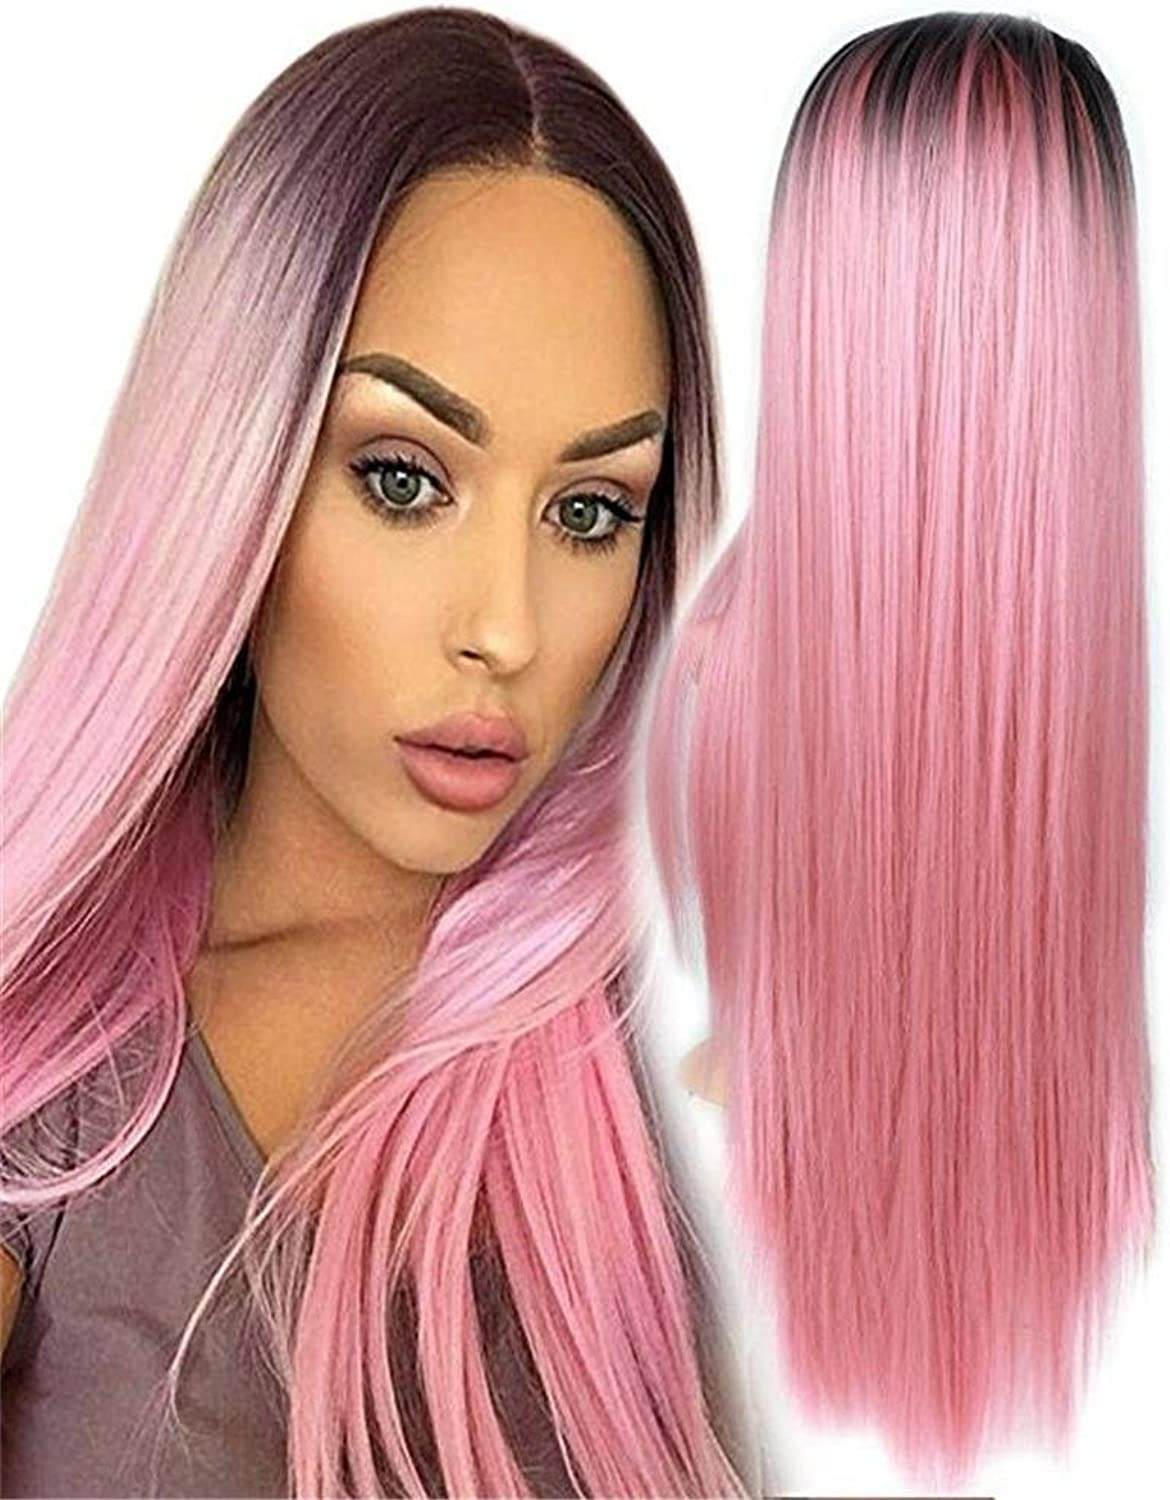 BeautyWig Ombre Pink Straight Long Wigs for Women Middle Part Dark Roots Heat Resistant Synthetic Cosplay Hair 28 Inch